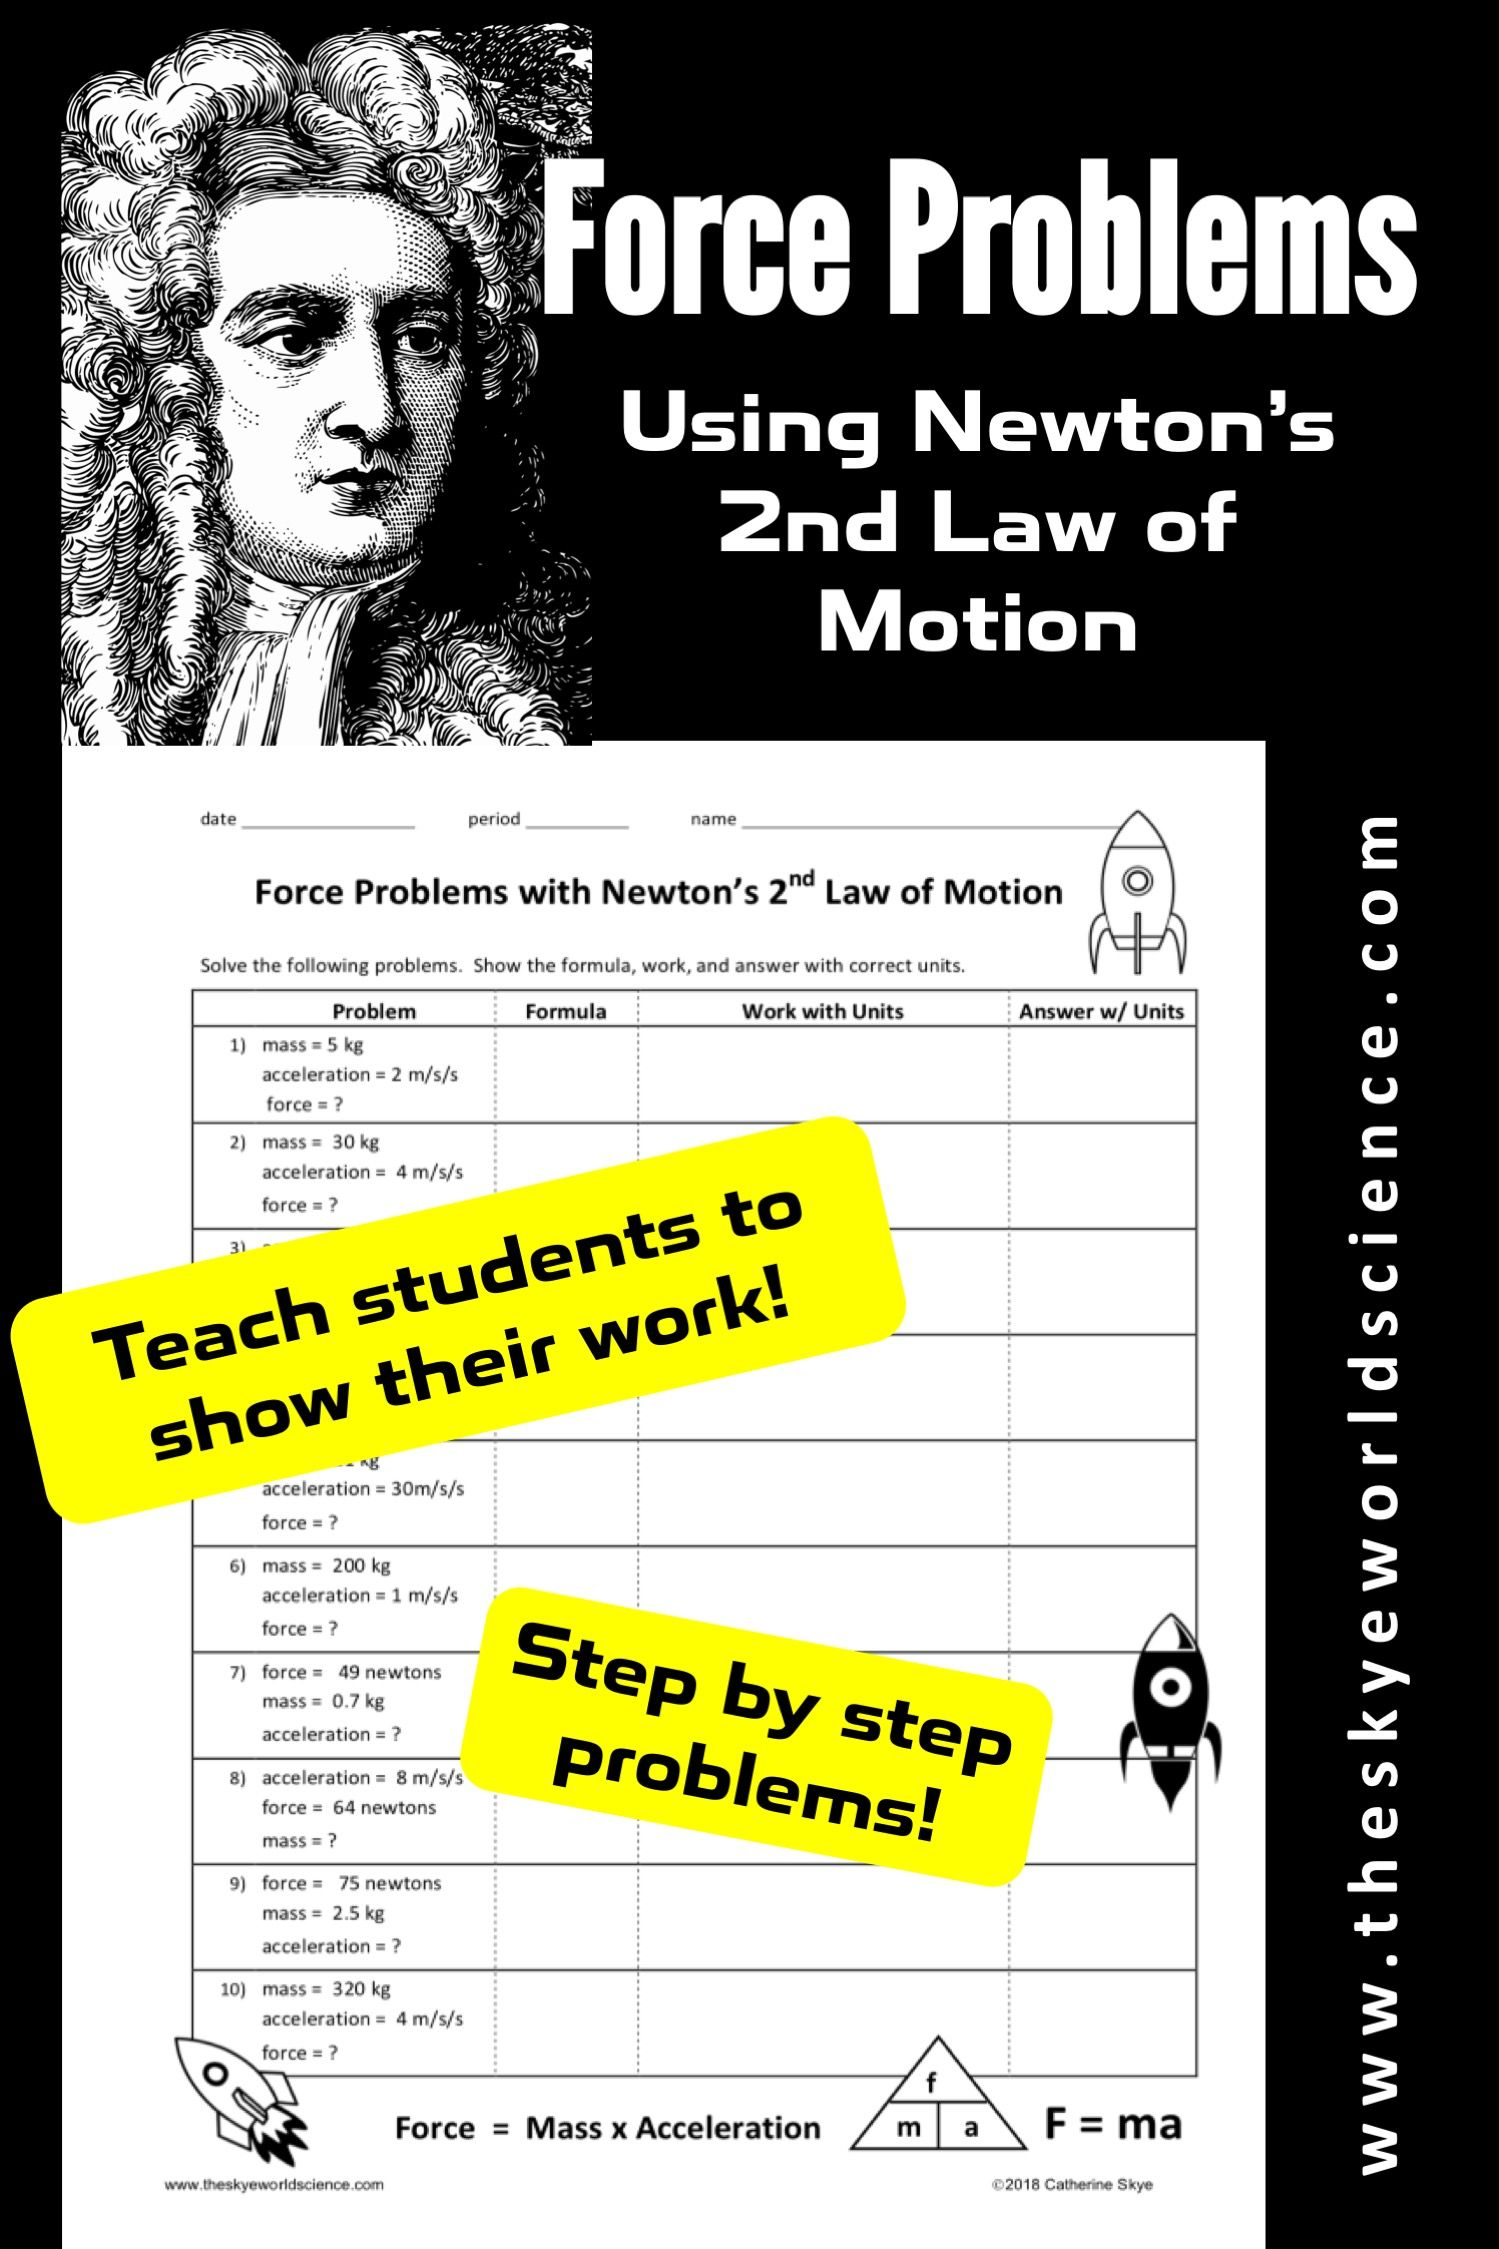 Force Problems Using Newton's 2nd Law of Motion Worksheet ...